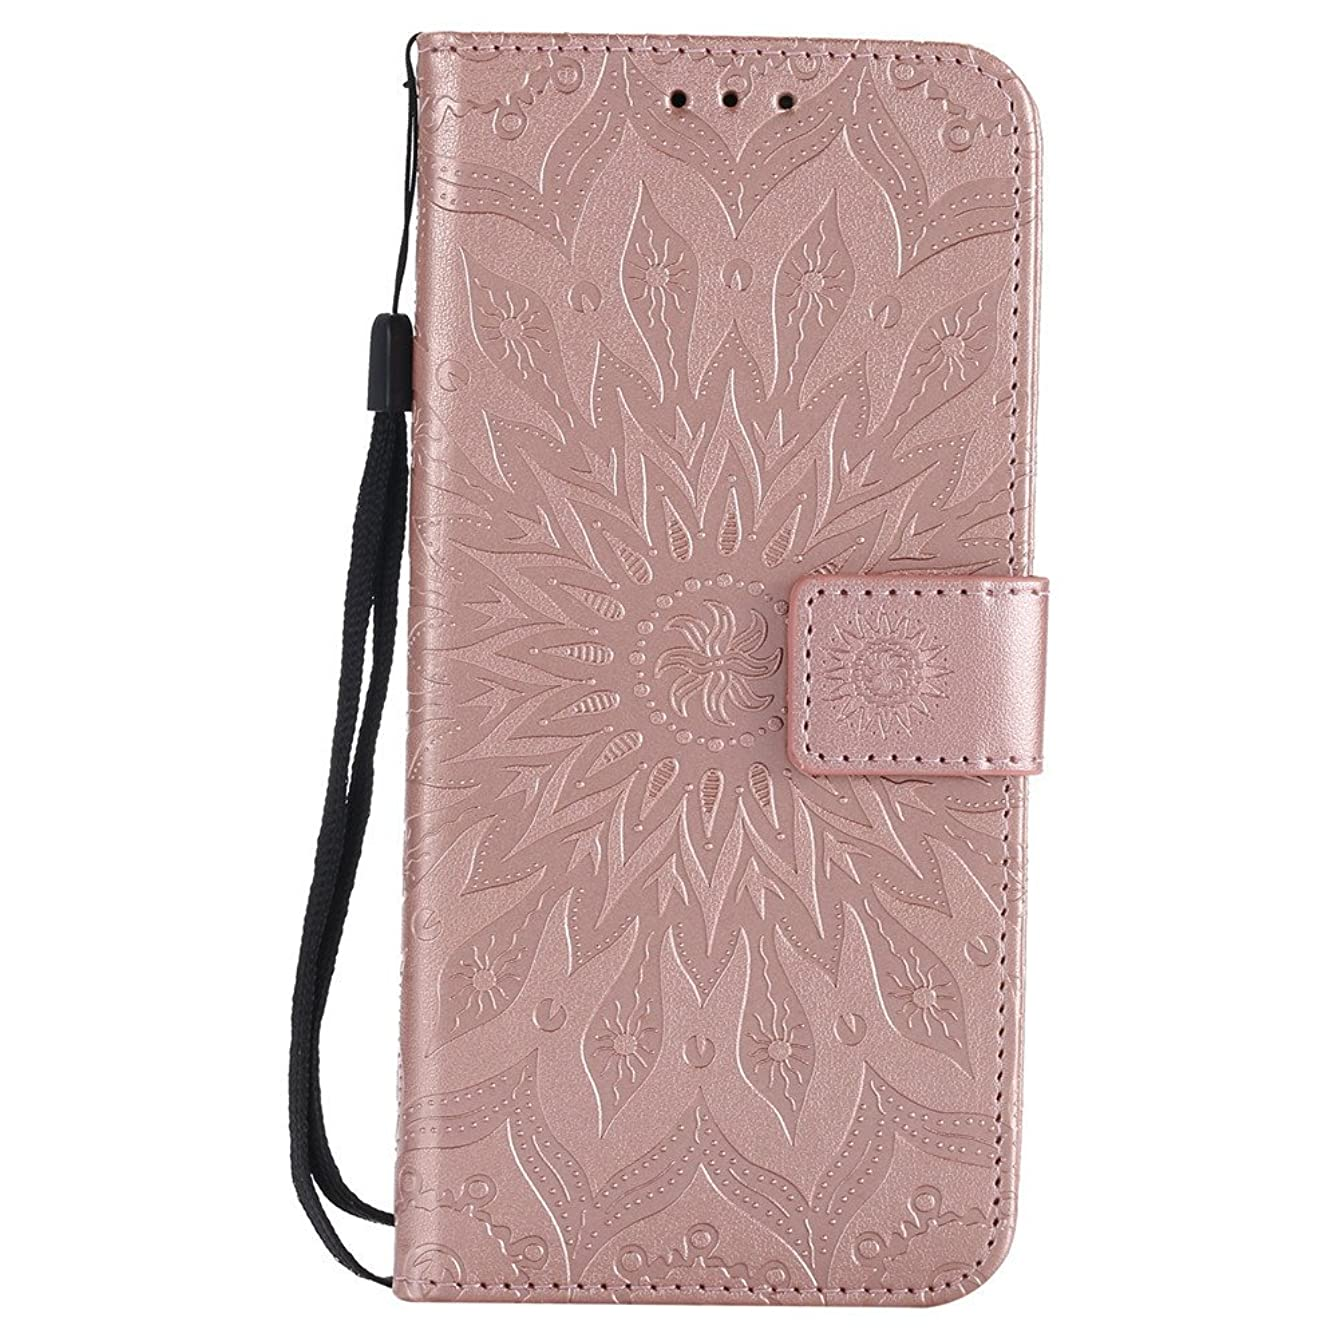 ISADENSER Samsung Galaxy S8 Case [Wallet Stand] as Gift with Shockproof Credit Card Holder Flip Magnetic Closure Protection PU Leather Wallet Case Cover for Samsung Galaxy S8 Rose Gold Sunflower